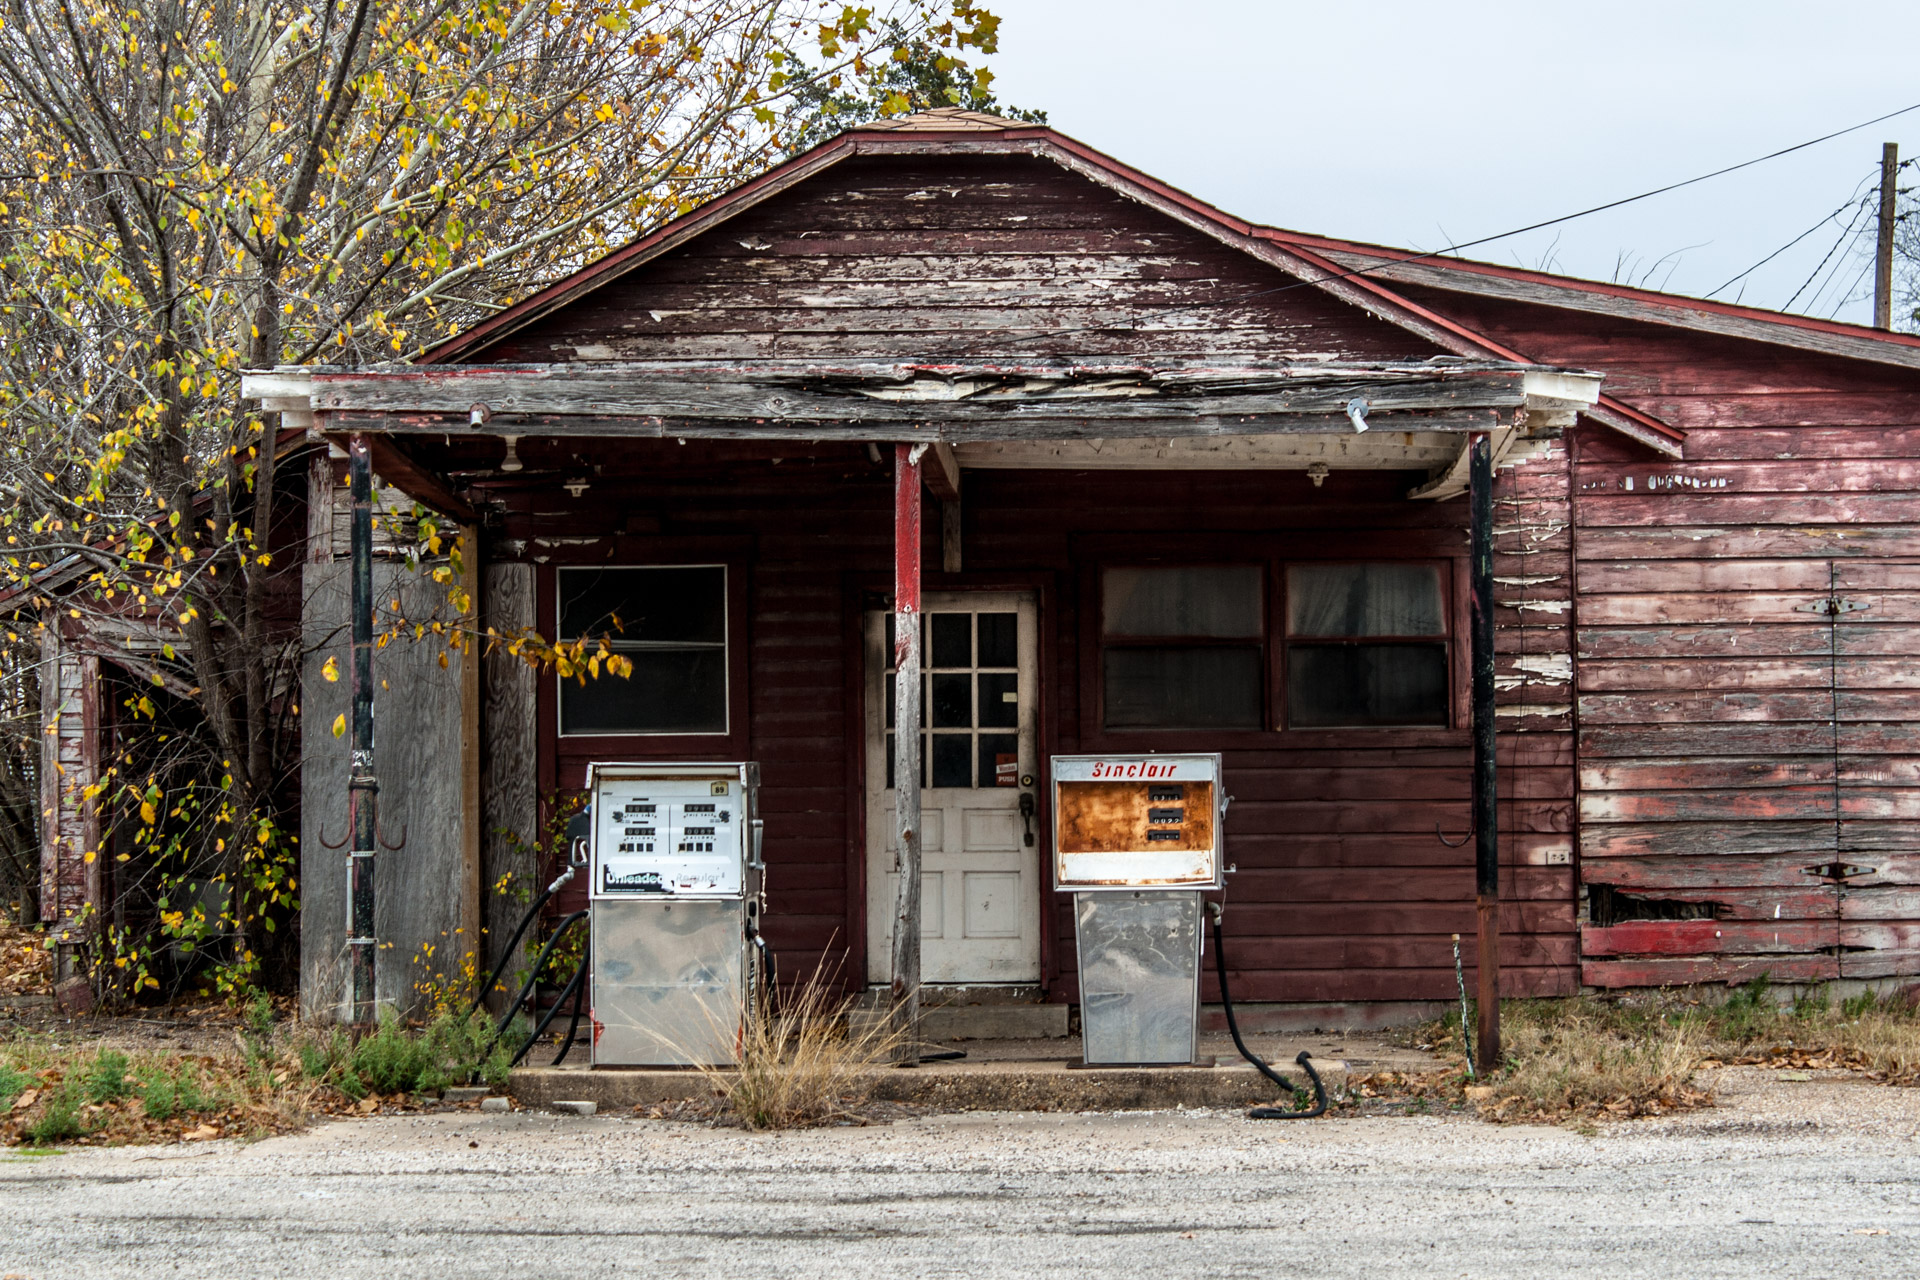 Kosse, Texas - Old Gas Pumps Gas Station (front mid)